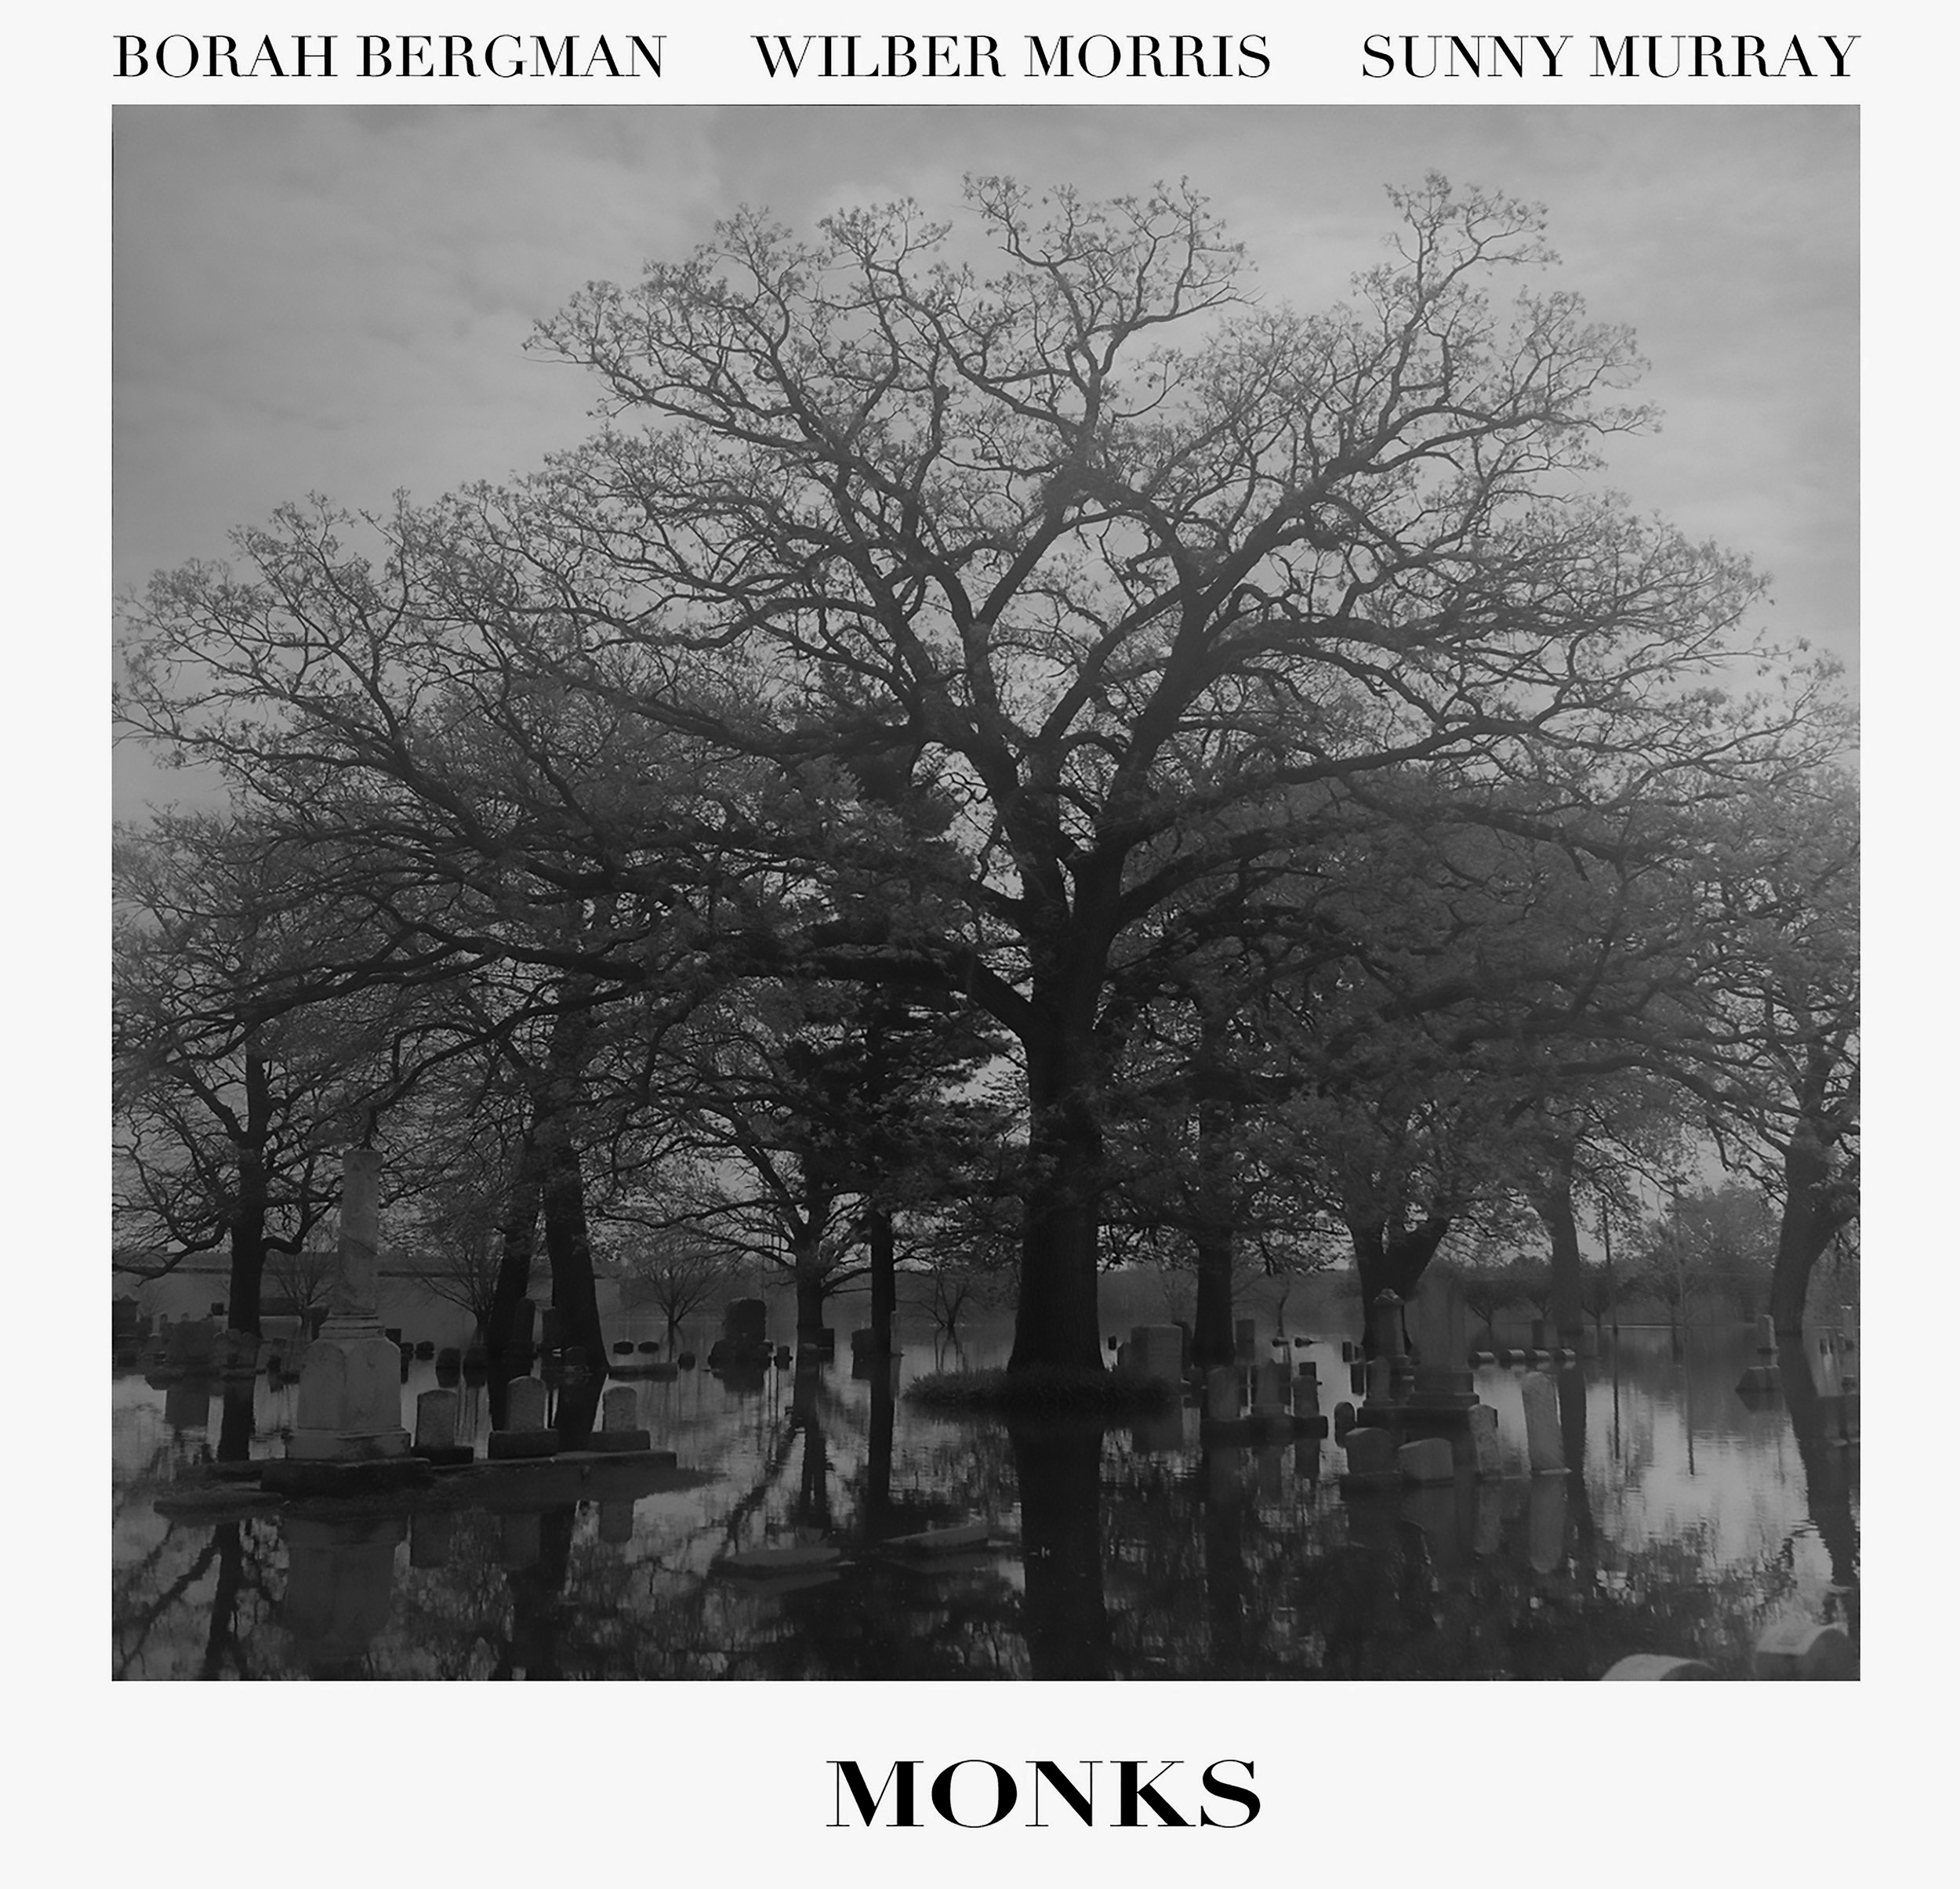 """Monks"" is an interpretation of the works of Thelonious Monk by Borah Bergman,  Wilber Morris, and Sunny Murray. Remastered by Jeff Willens, Produced by Joe Chonto. My first album cover!"